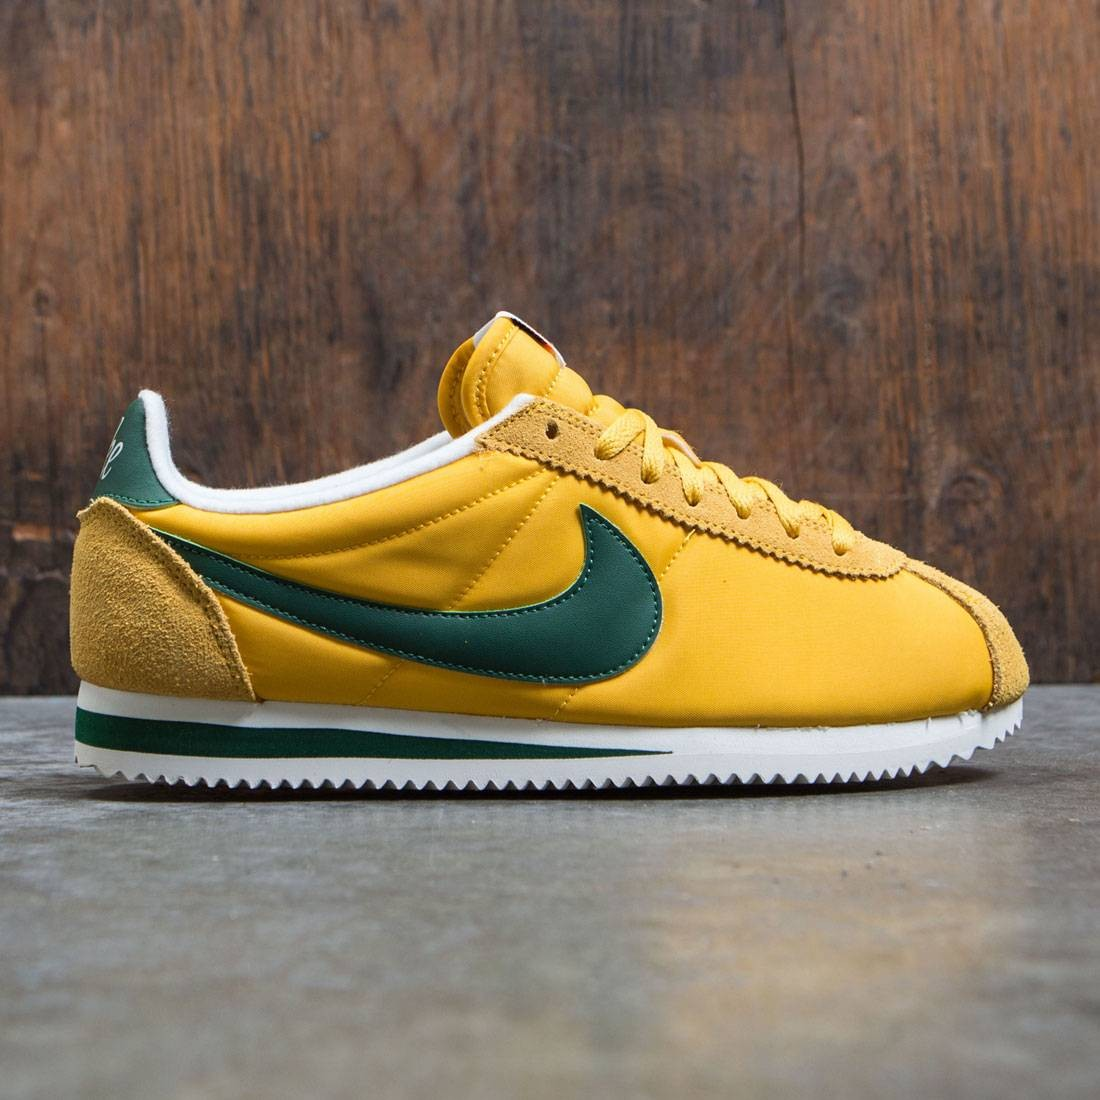 reputable site 34117 0bd61 nike men classic cortez nylon premium yellow ochre gorge green sail